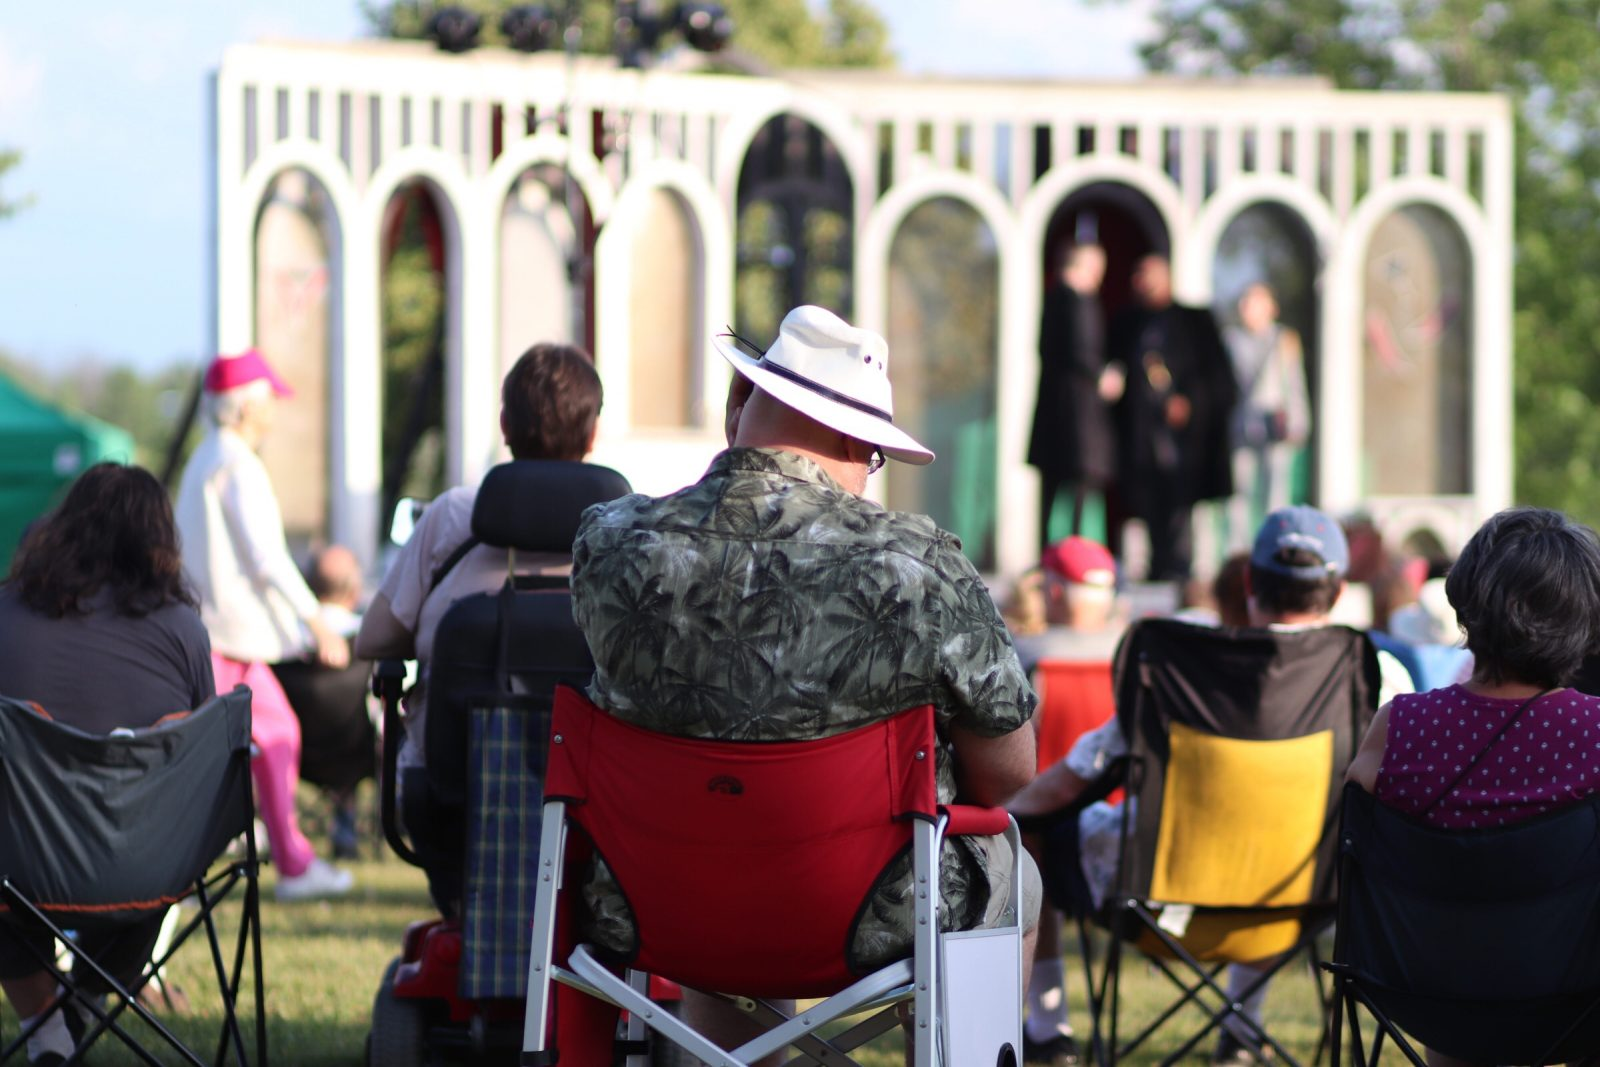 Lamoureux Park gets Elizabethan with Shakespeare in the Park